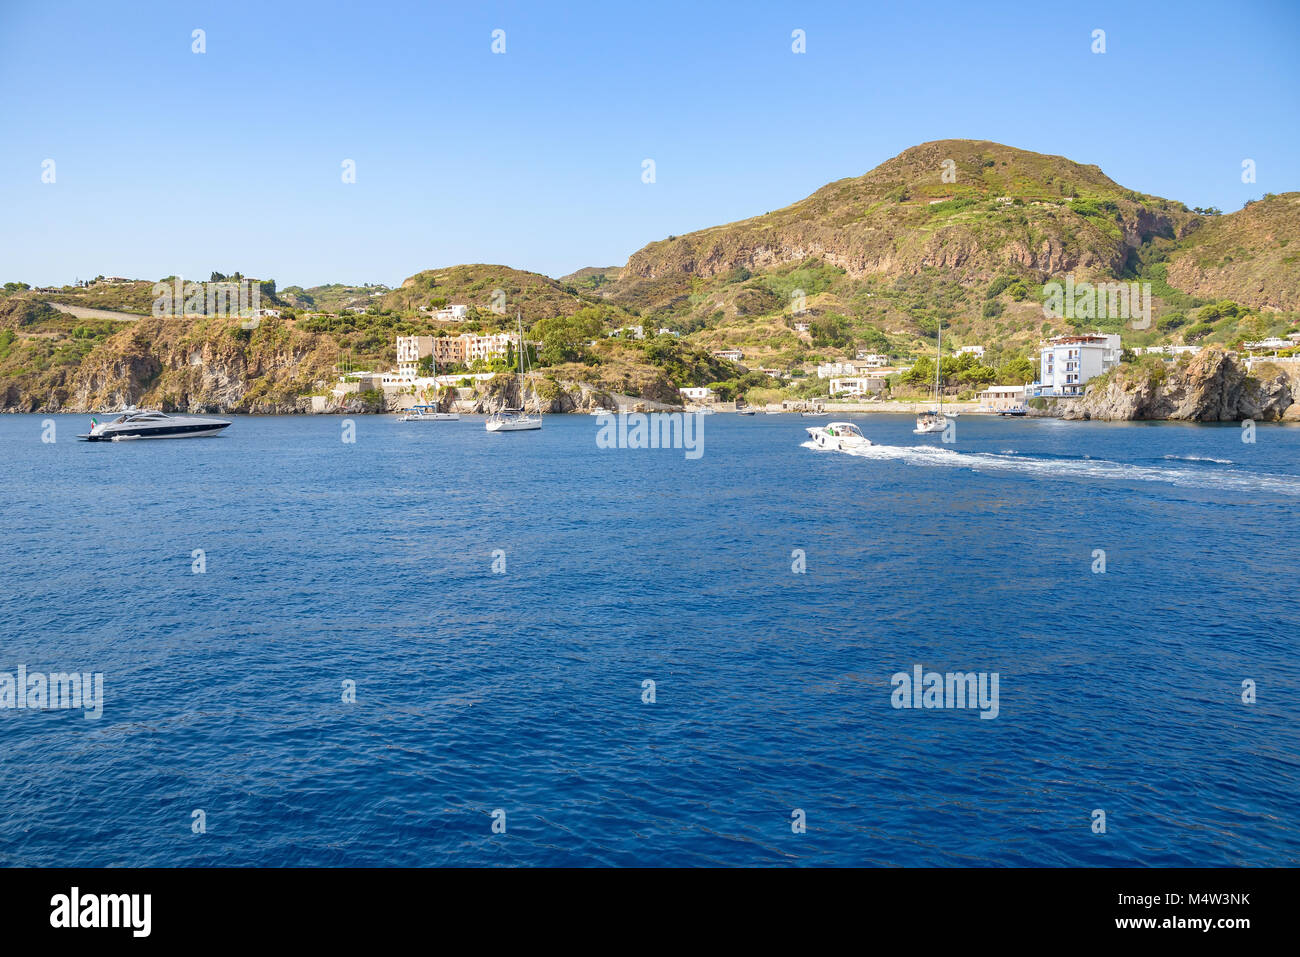 Lipari Island seen from the sea, Aeolian Islands, Italy Stock Photo